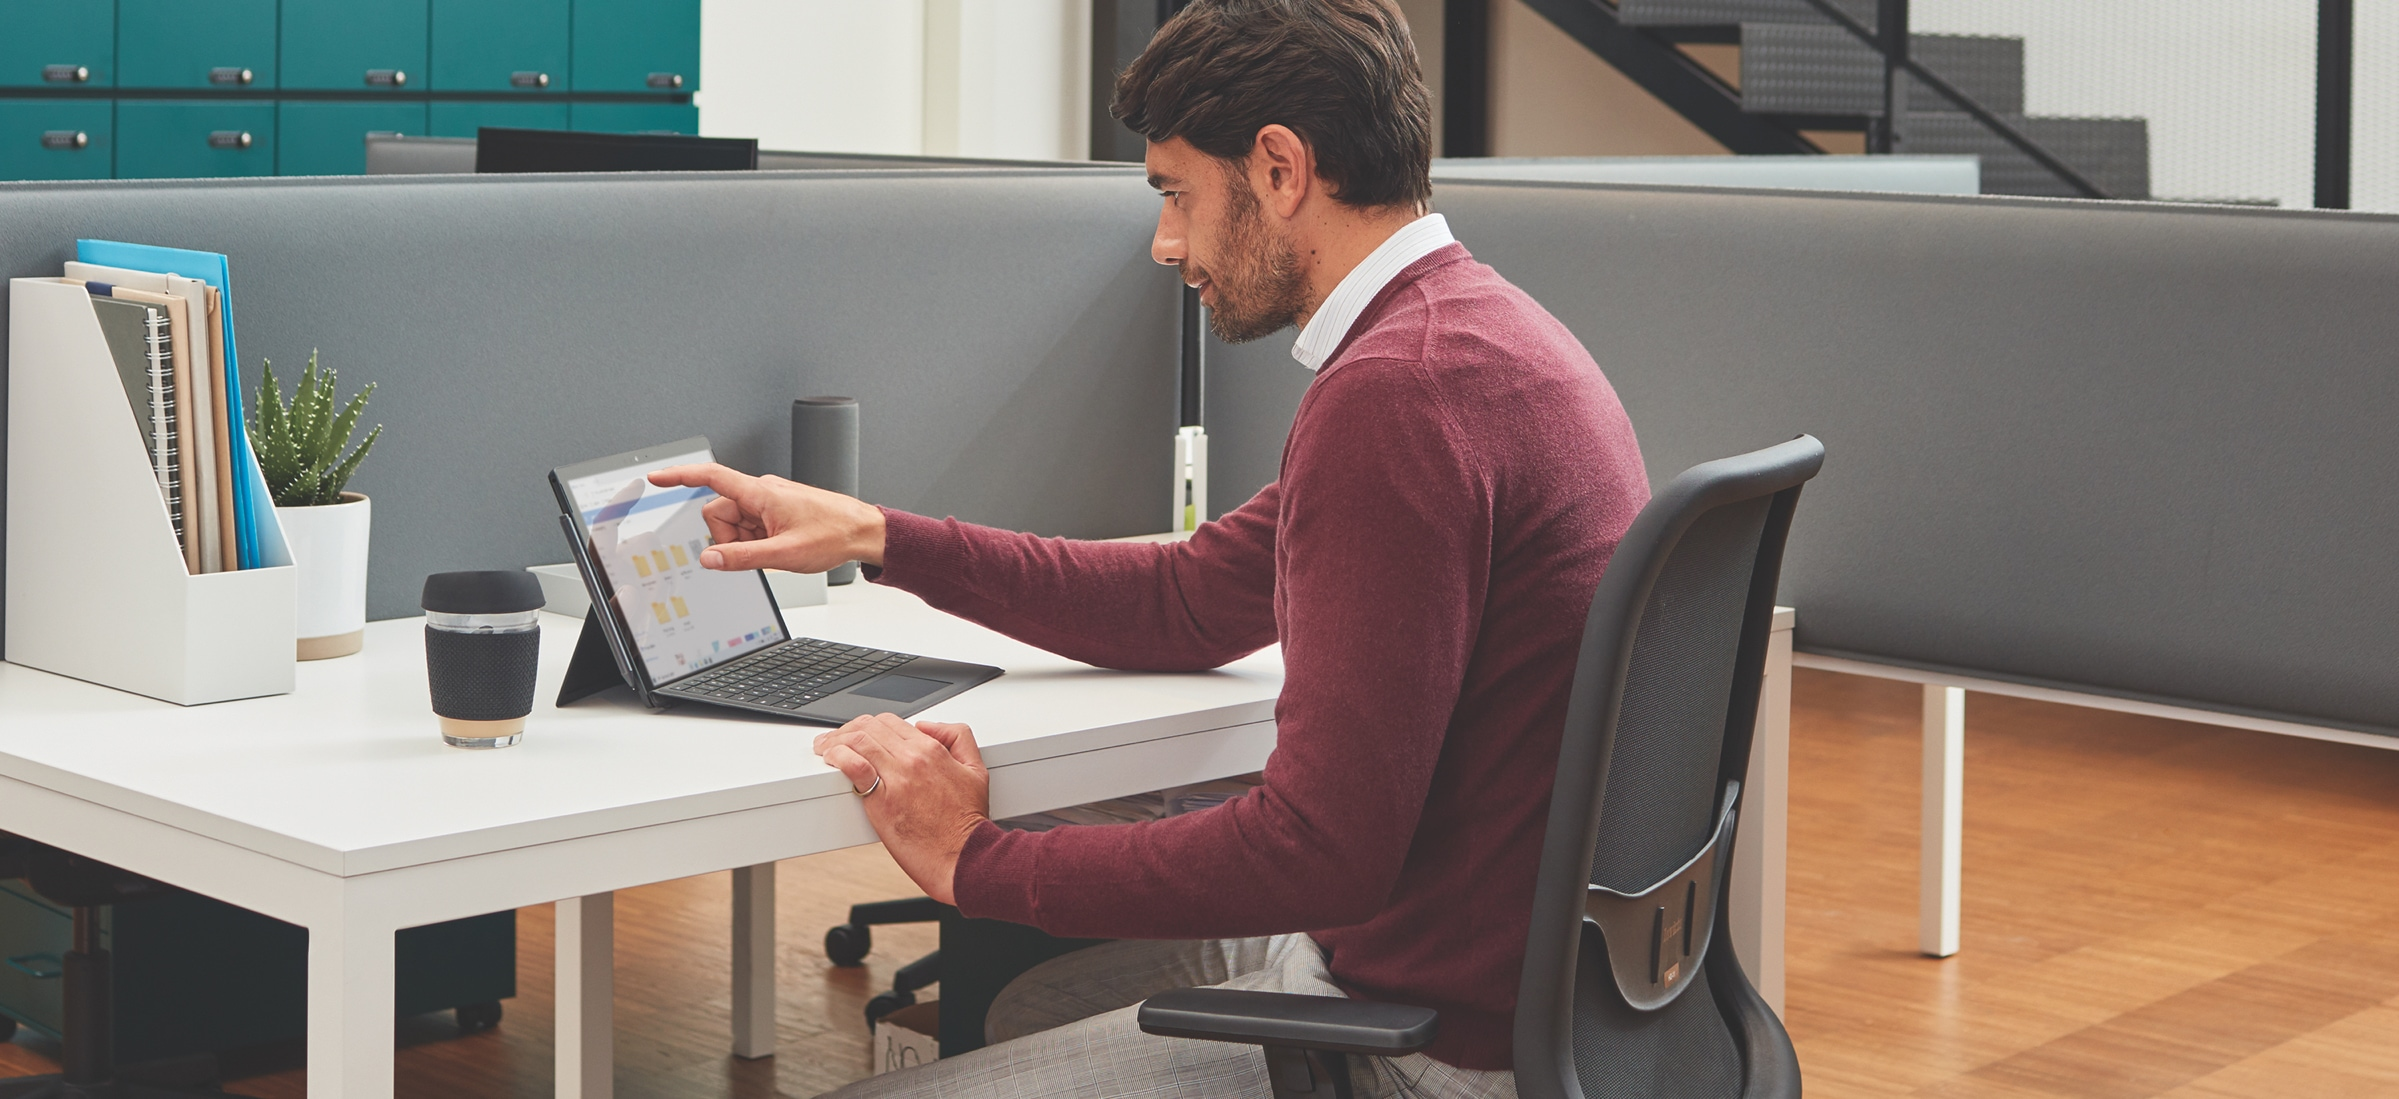 Person seated at a cubicle desk in an office using a Microsoft Surface